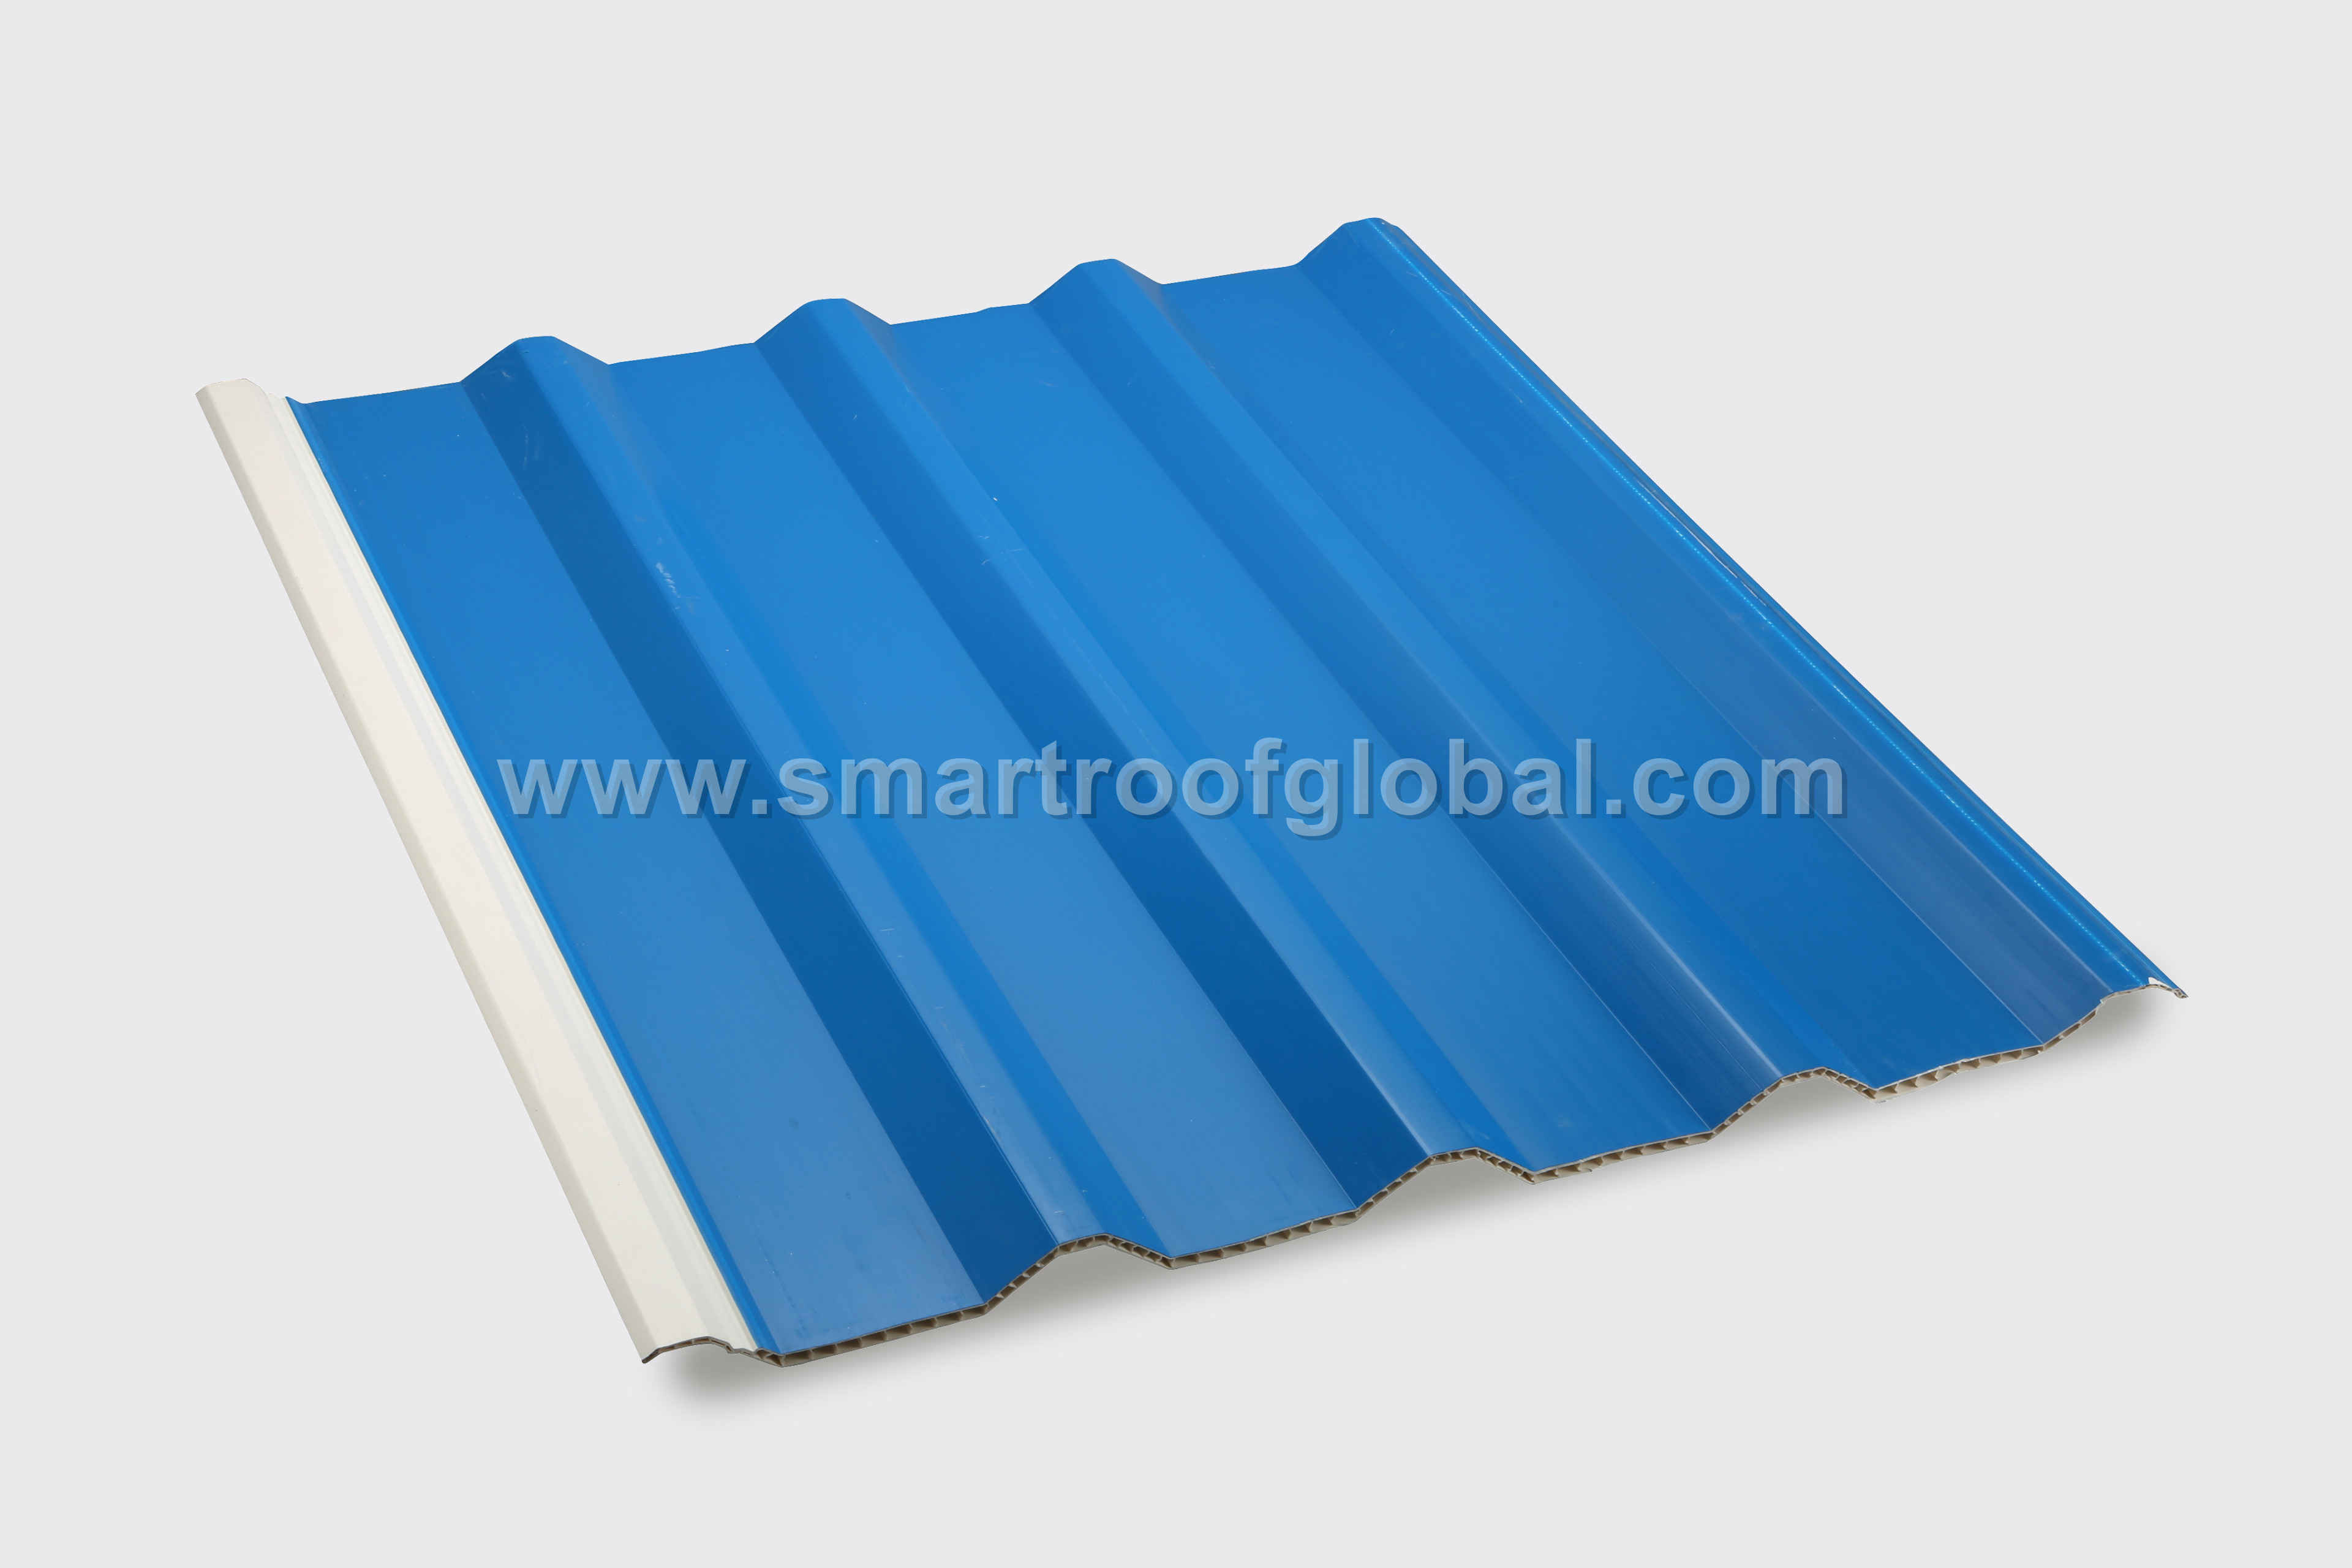 Polycarbonate Roofing Sheets Featured Image